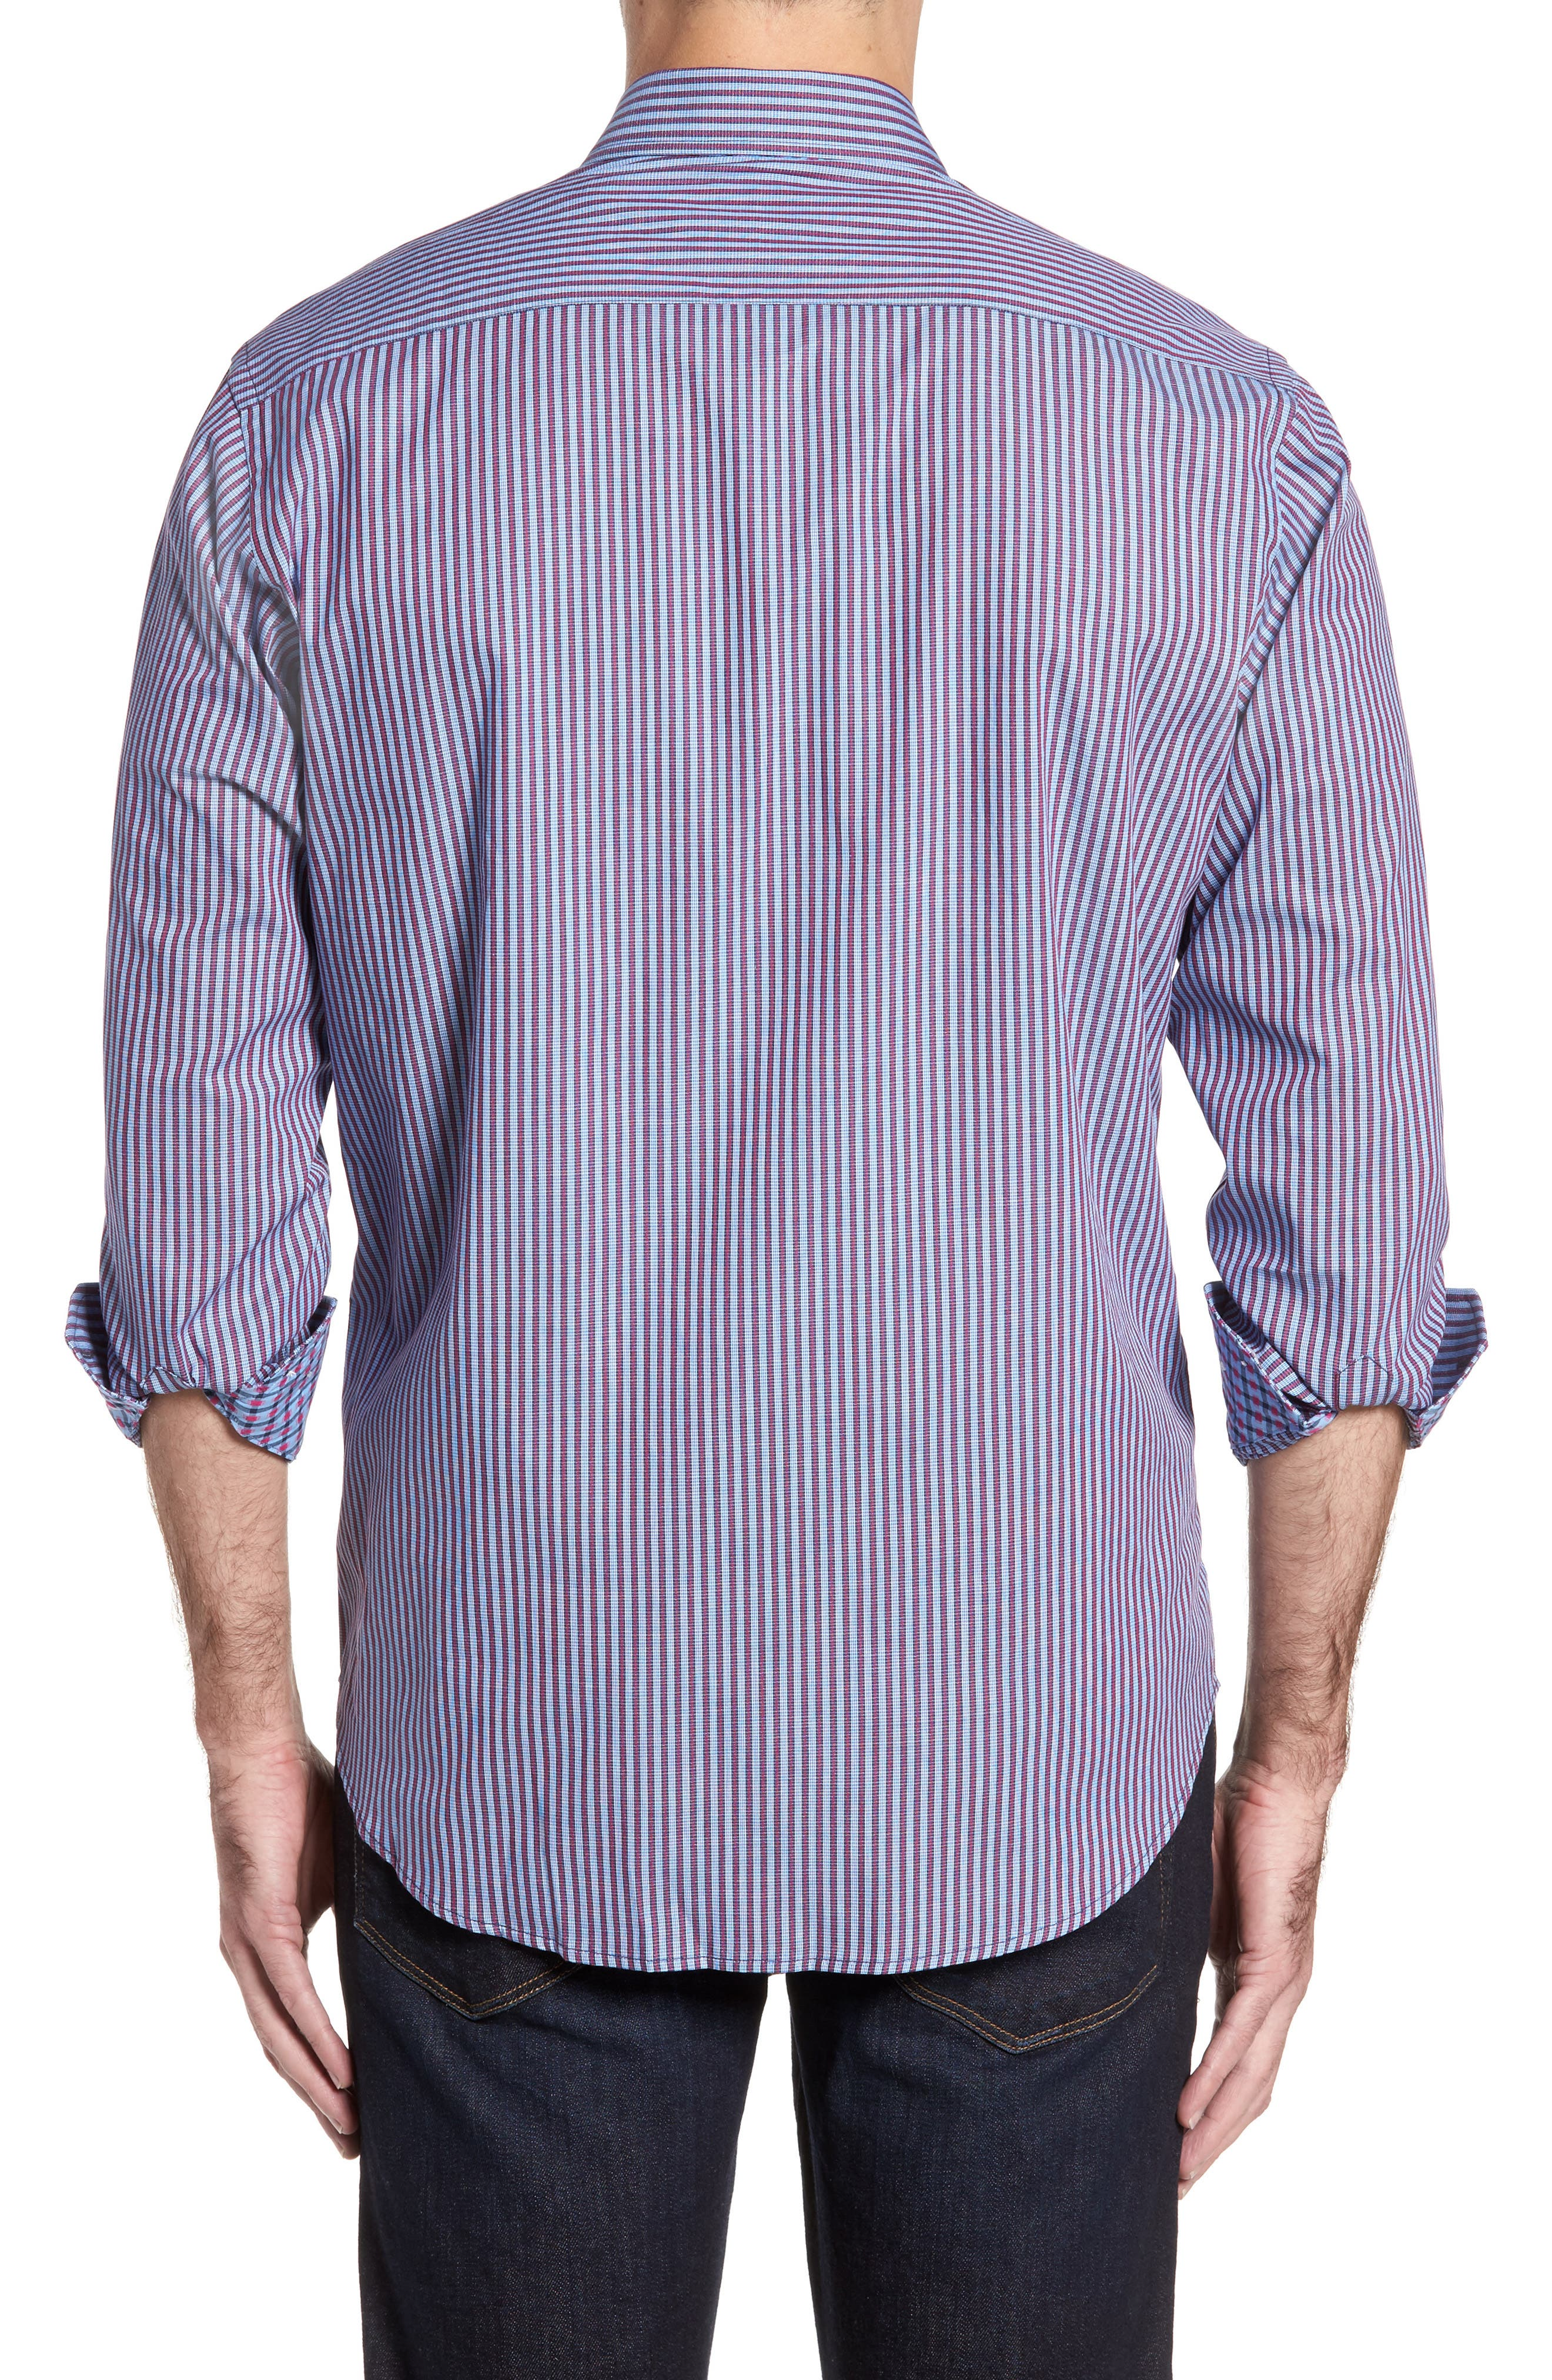 Brownfields Striped Sport Shirt,                             Alternate thumbnail 2, color,                             Merlot